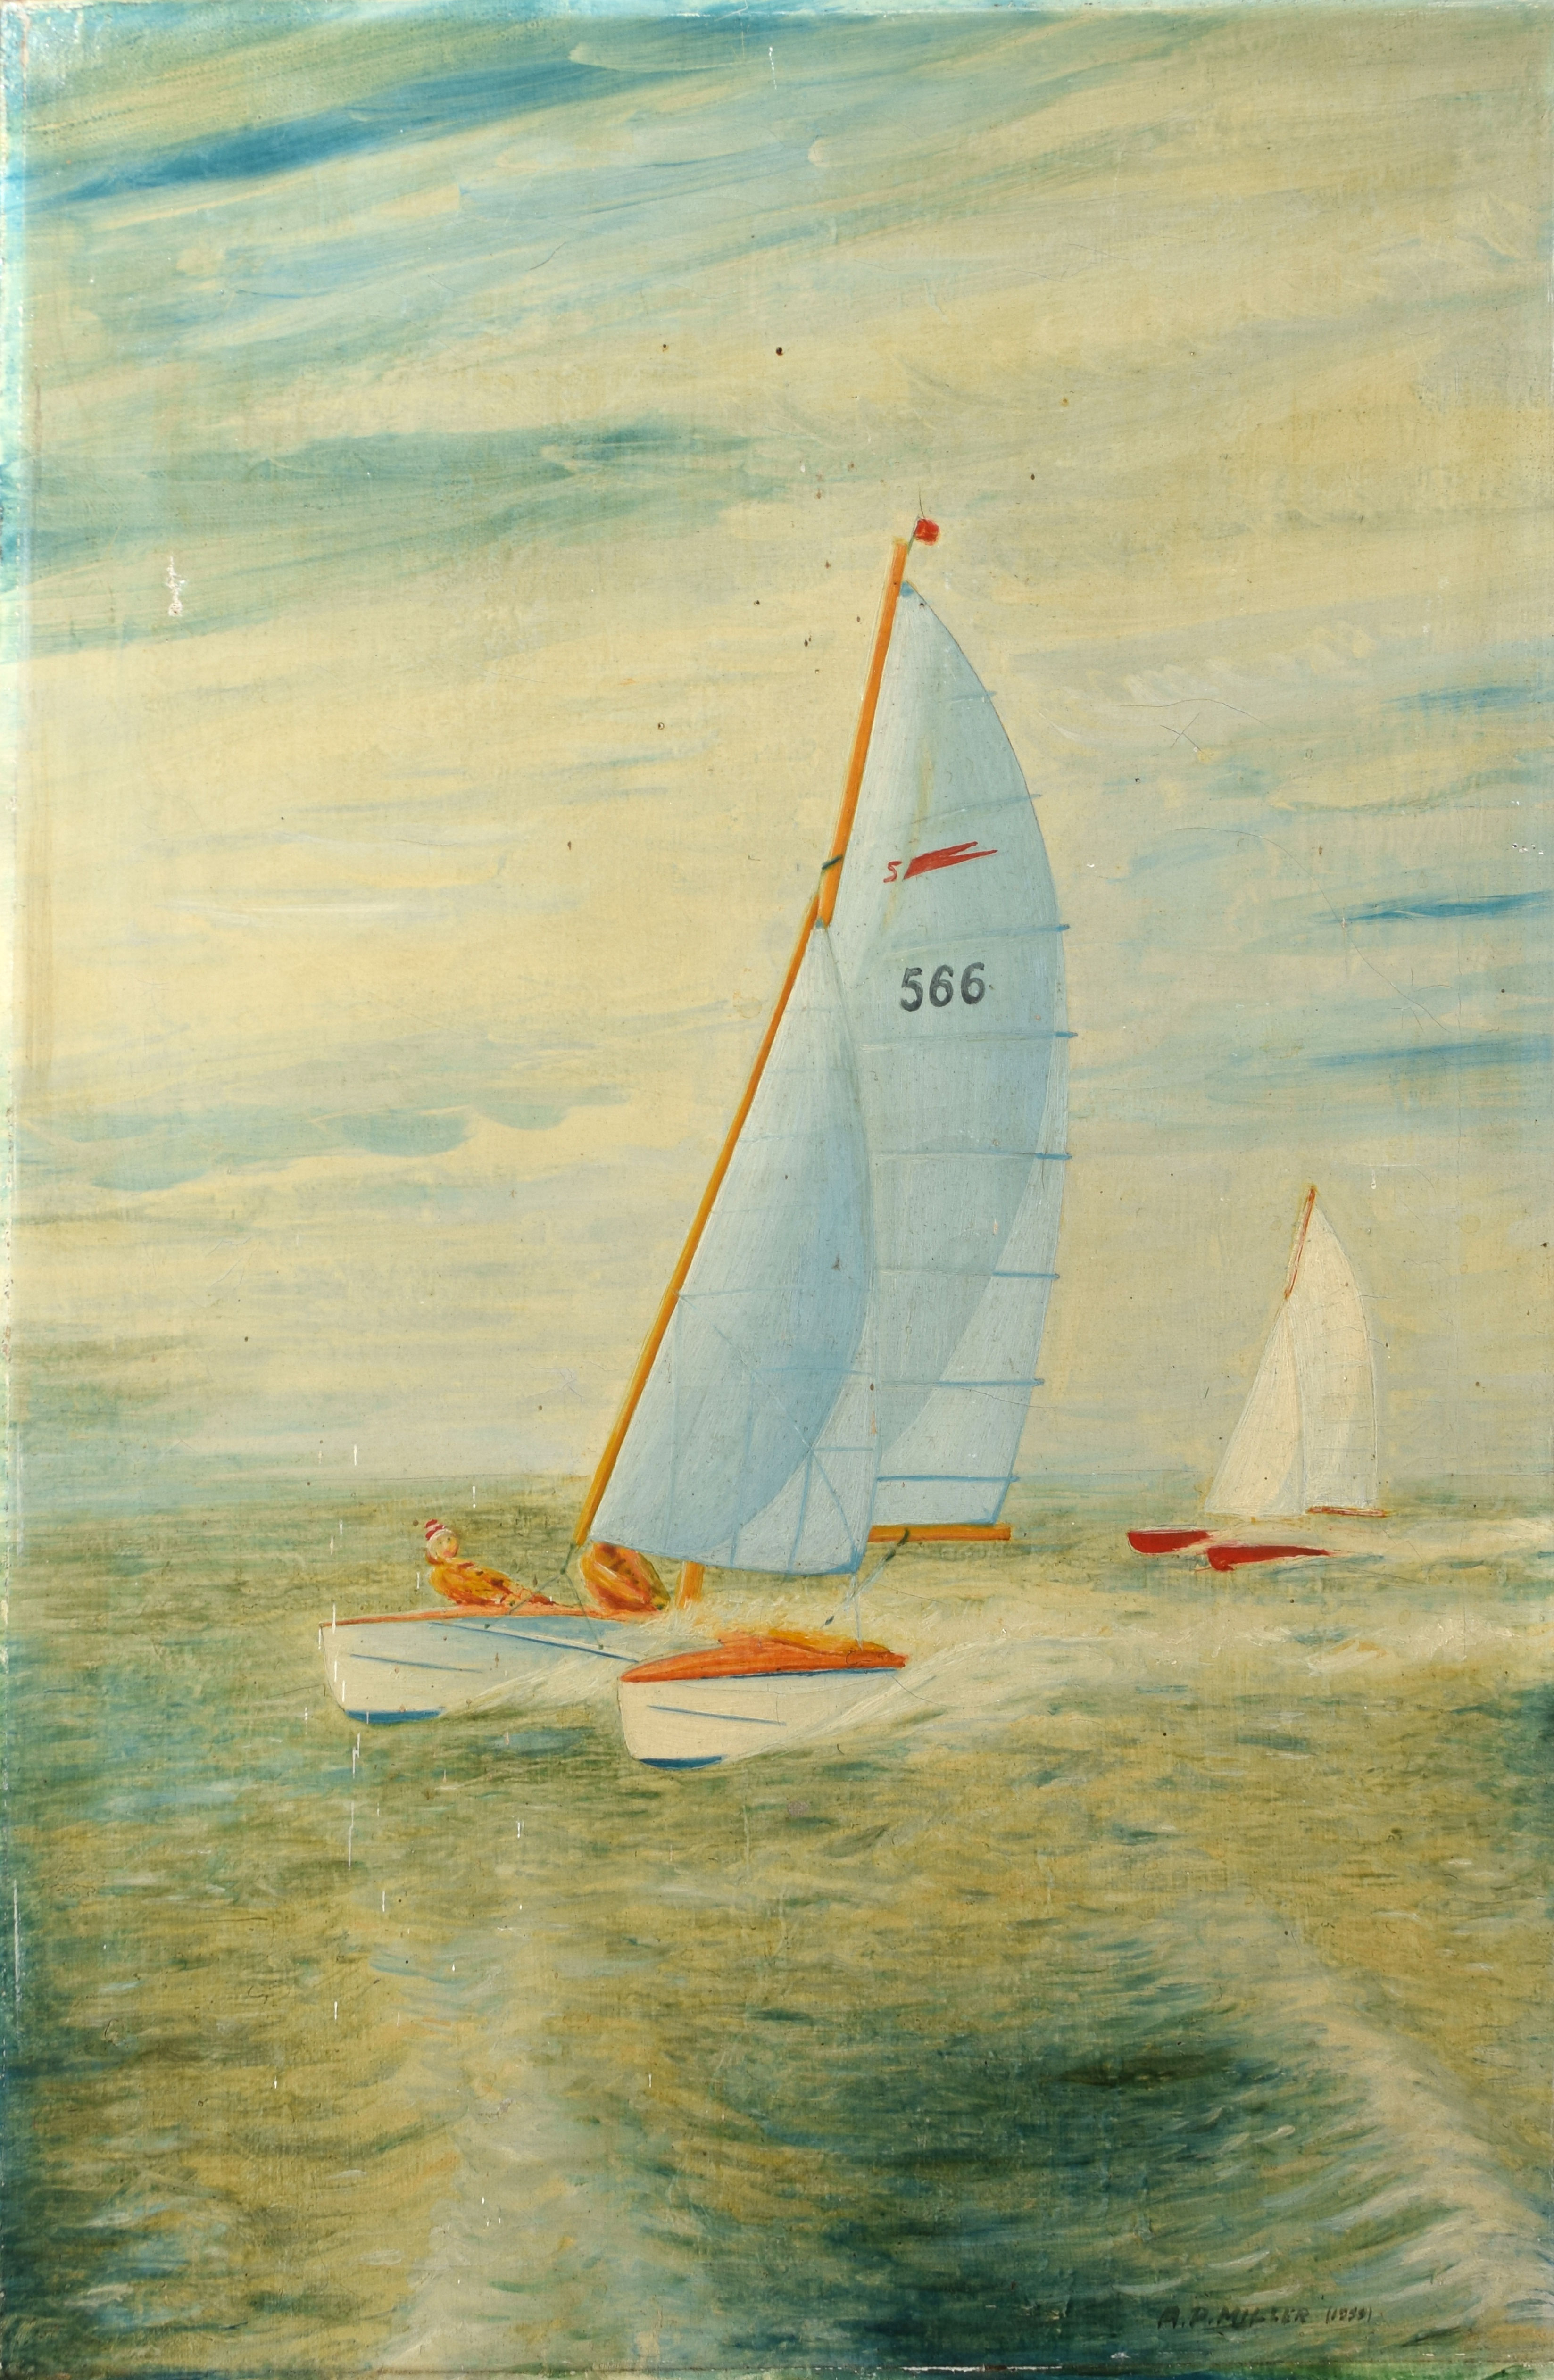 A P Miller, Sailing scene, oil on canvas, signed lower right, 61 x 41cm, unframed